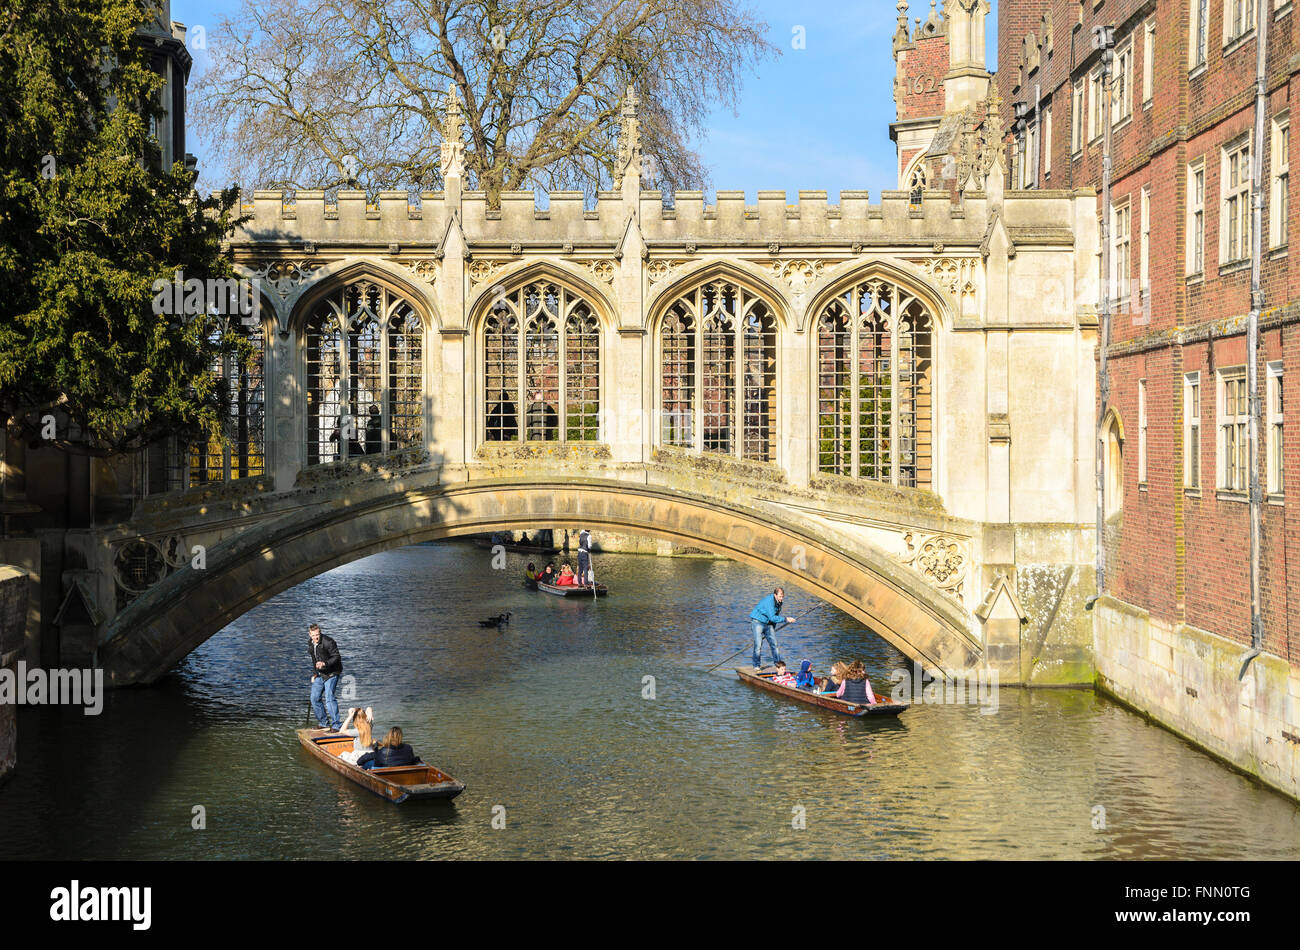 The bridge commonly known as the 'Bridge of Sighs' over the River Cam, St Johns College, Cambridge, England, UK.Stock Photo